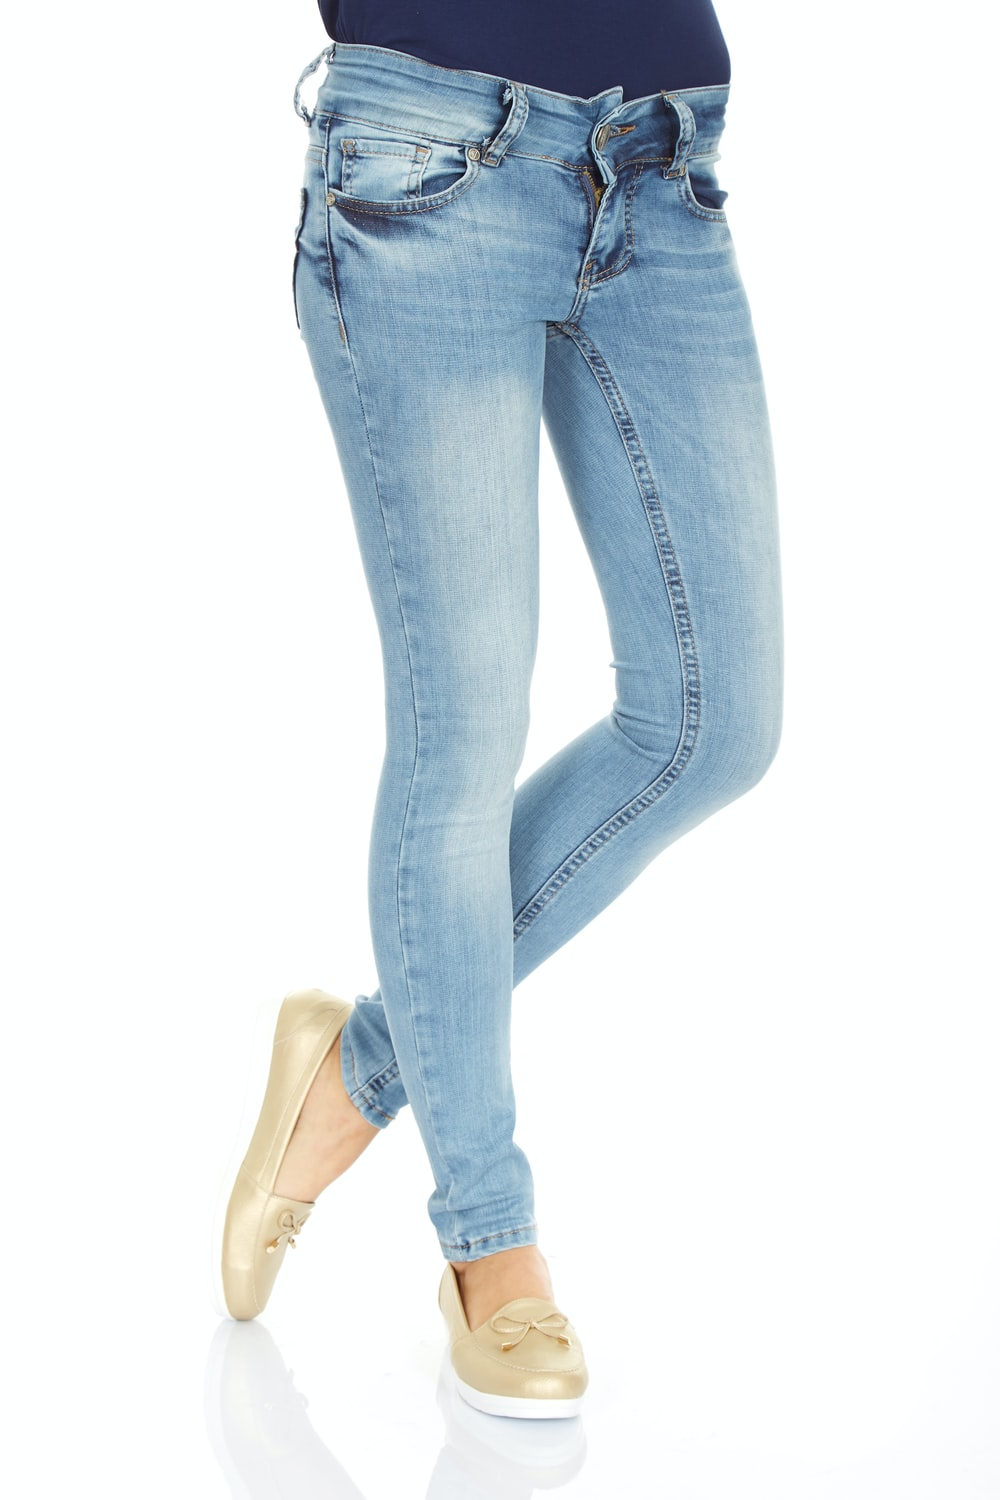 woman in blue denim jeans and white sneakers